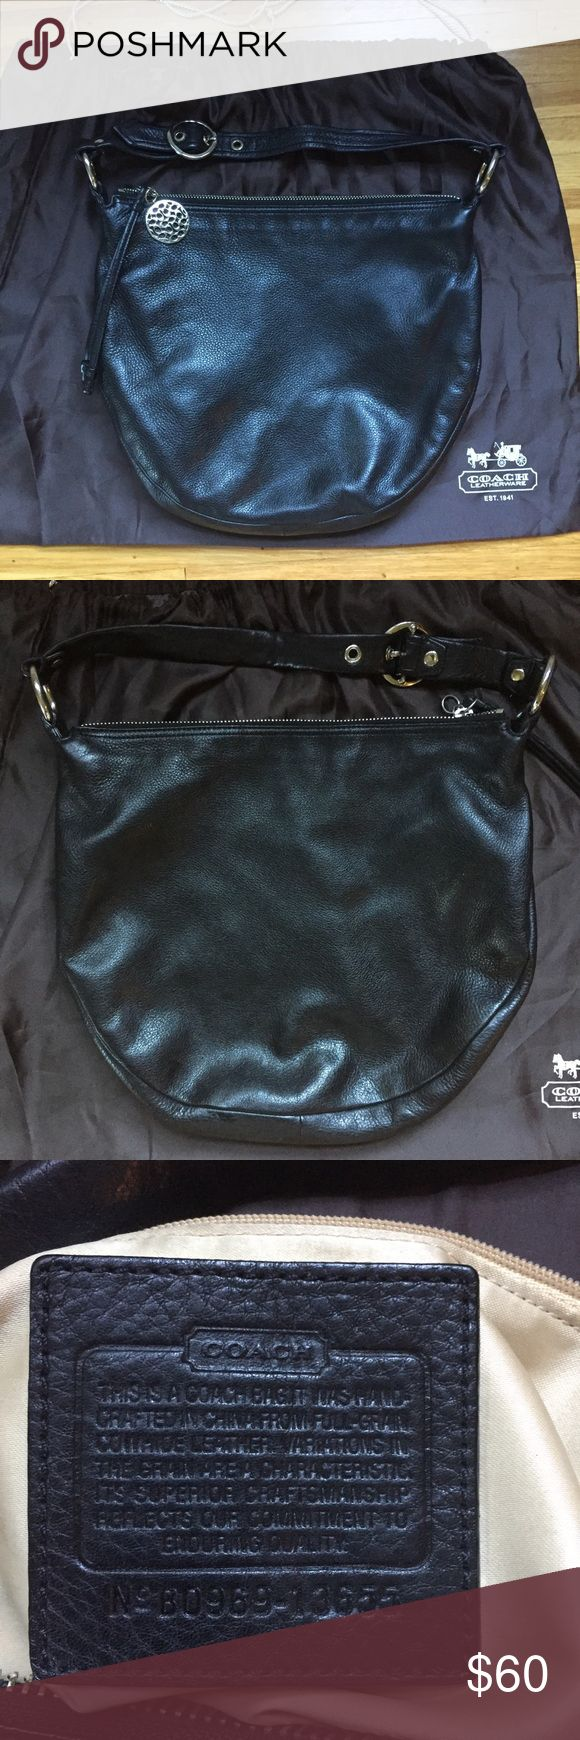 Coach Pebbled Leather Hobo Coach hobo bag with black pebbled leather. Very soft. Gold satin interior. Exterior in excellent condition, but some spots and pen marks inside. Dust bag included. Coach Bags Hobos